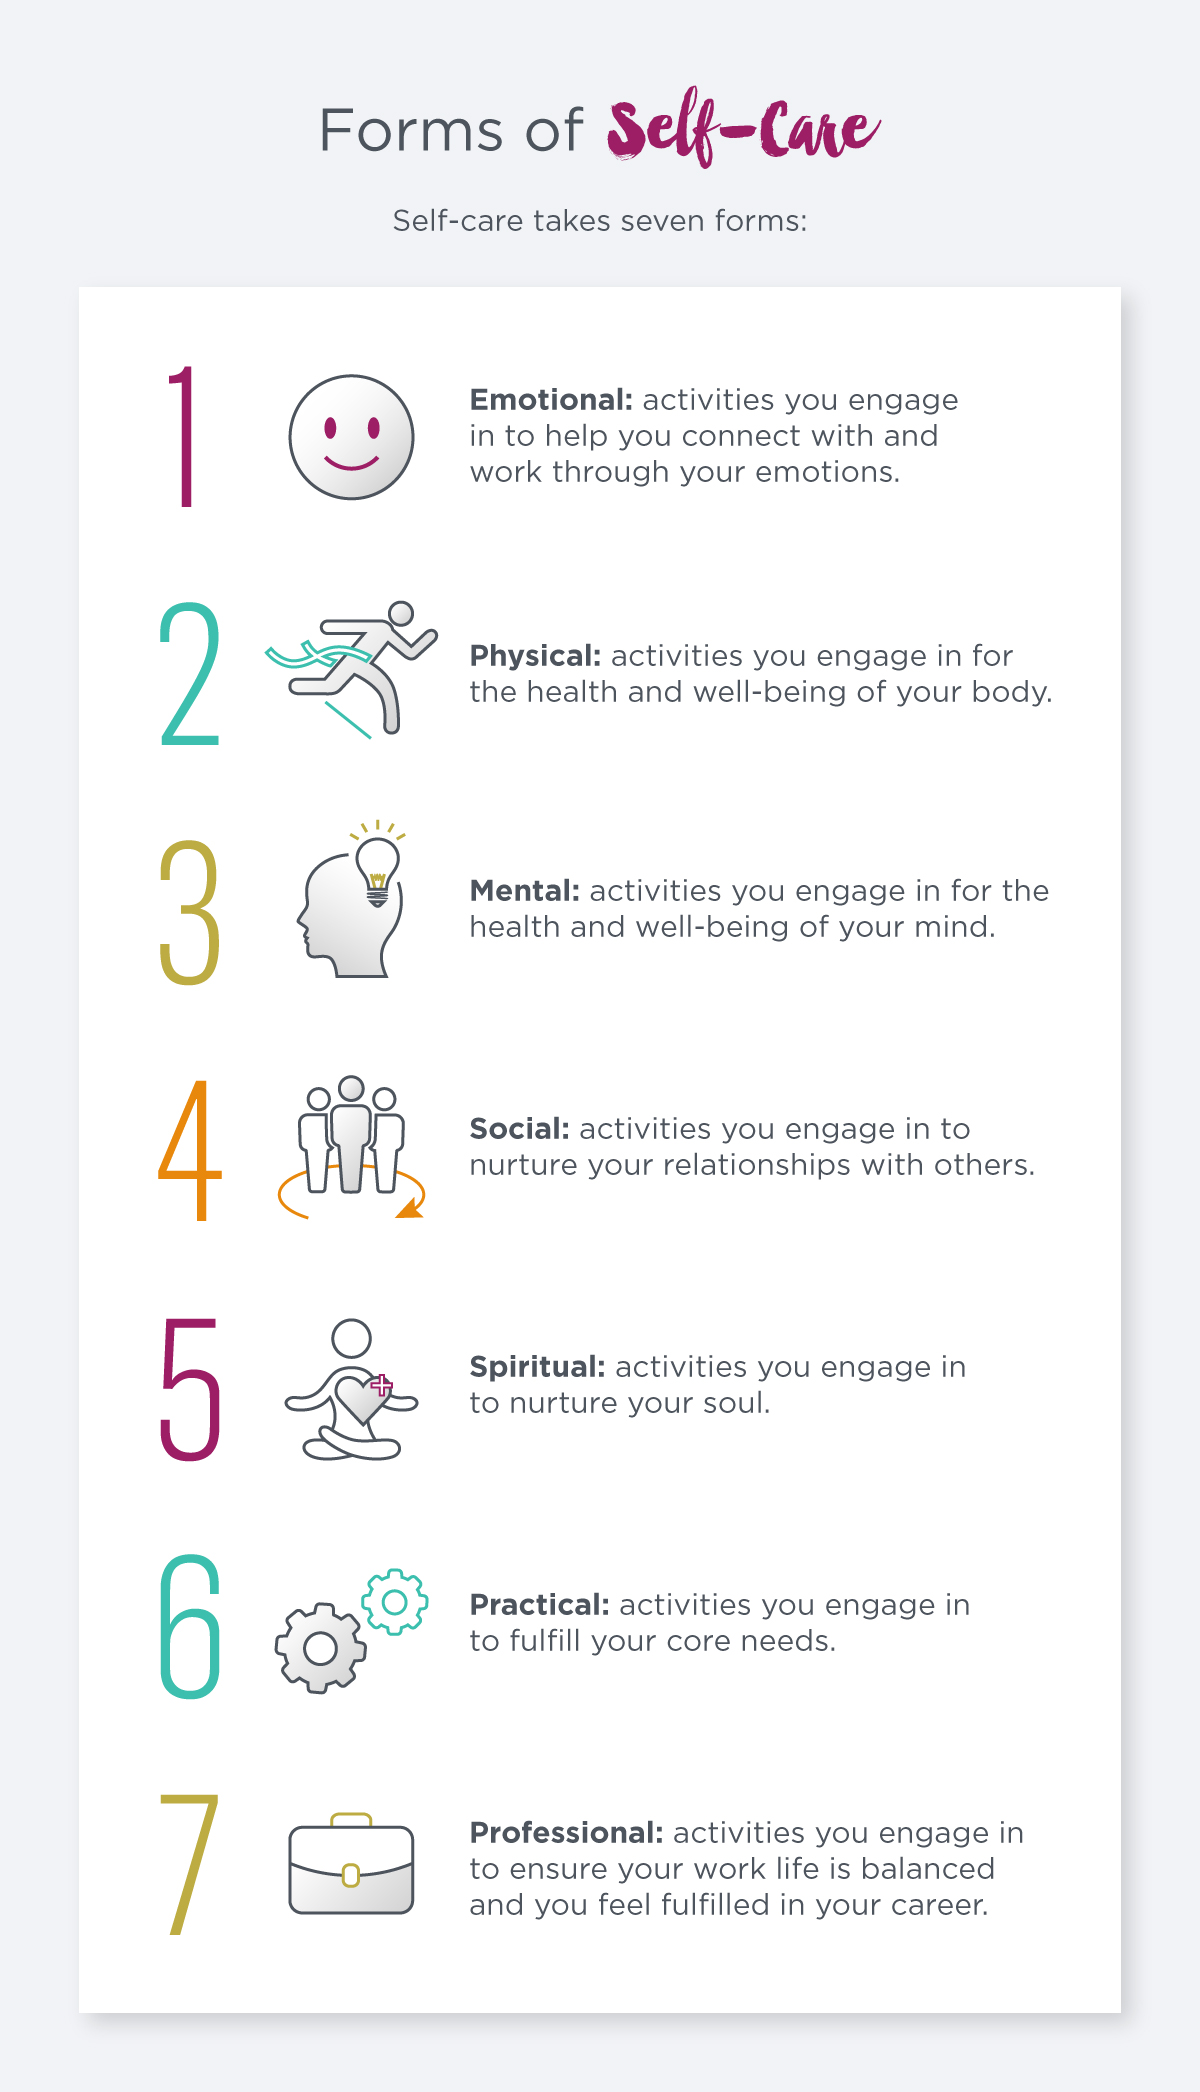 7 Forms of Self-Care